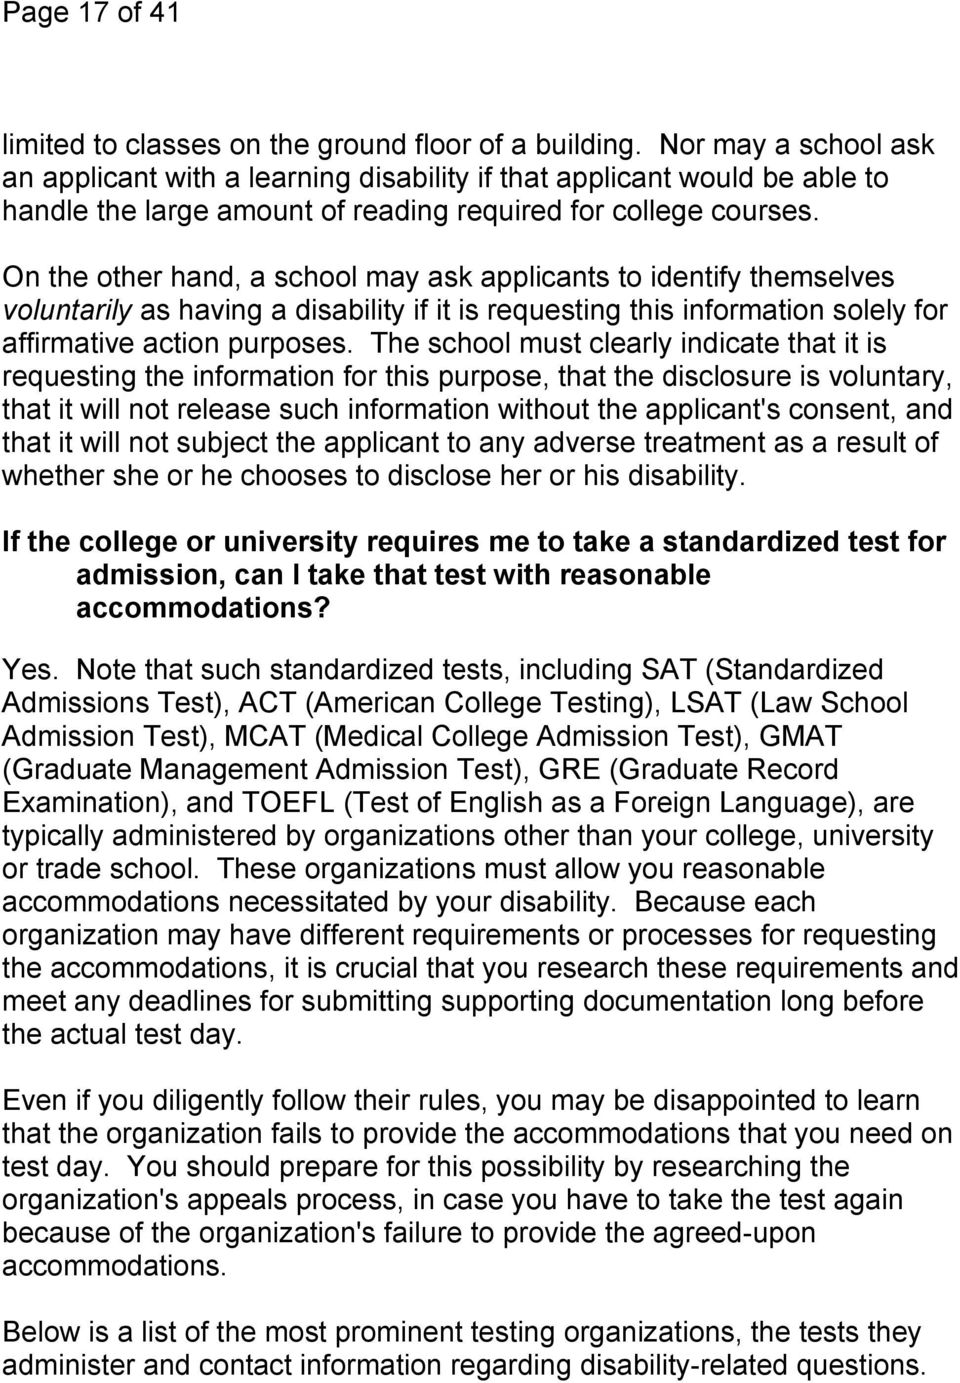 On the other hand, a school may ask applicants to identify themselves voluntarily as having a disability if it is requesting this information solely for affirmative action purposes.